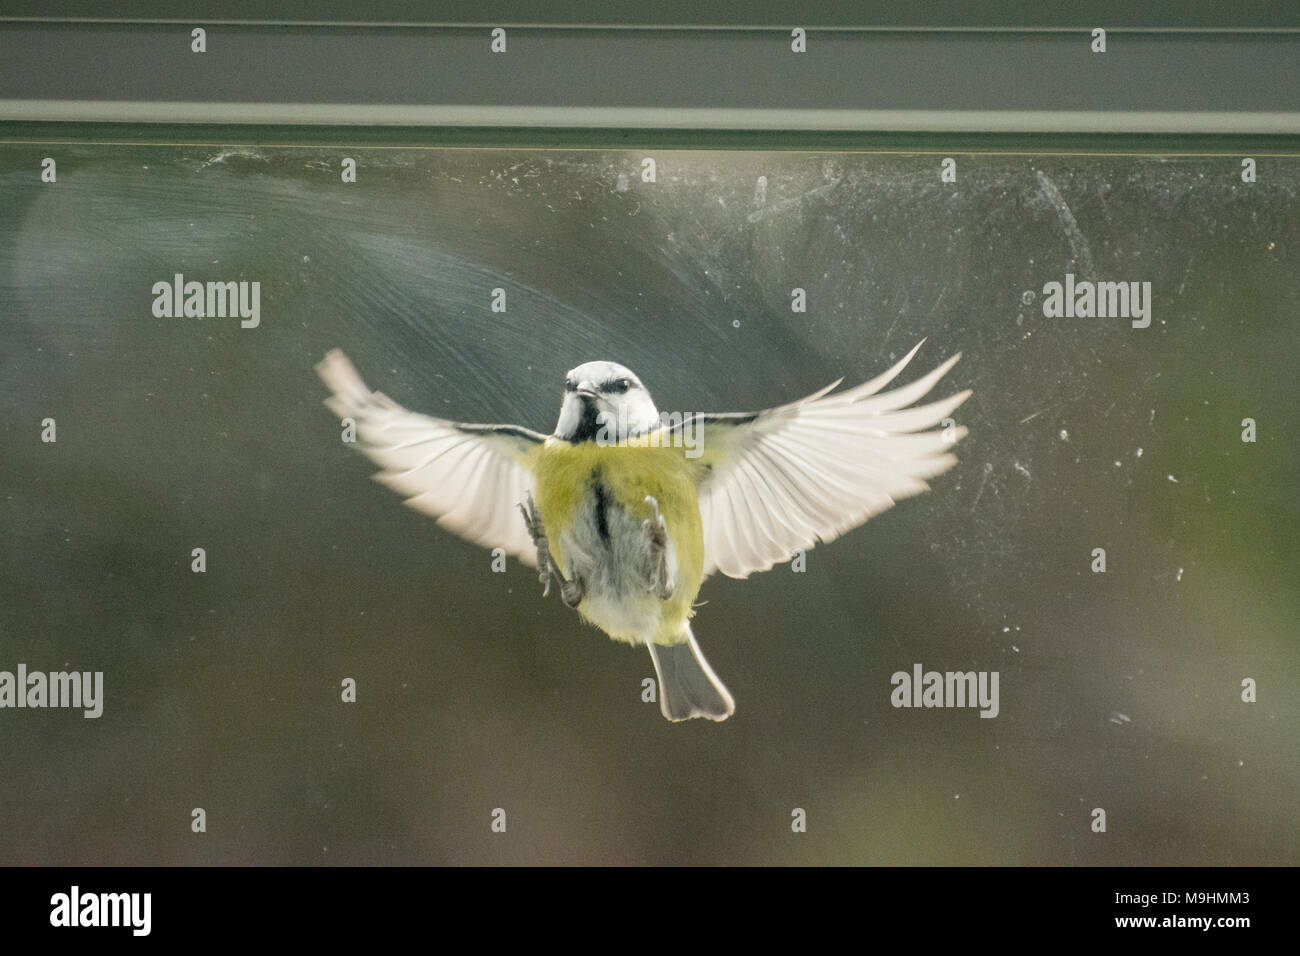 blue-tit-cyanistes-caeruleus-tapping-at-the-window-mistaking-its-own-reflection-for-a-rival-bird-behaviour-animal-humour-M9HMM3.jpg